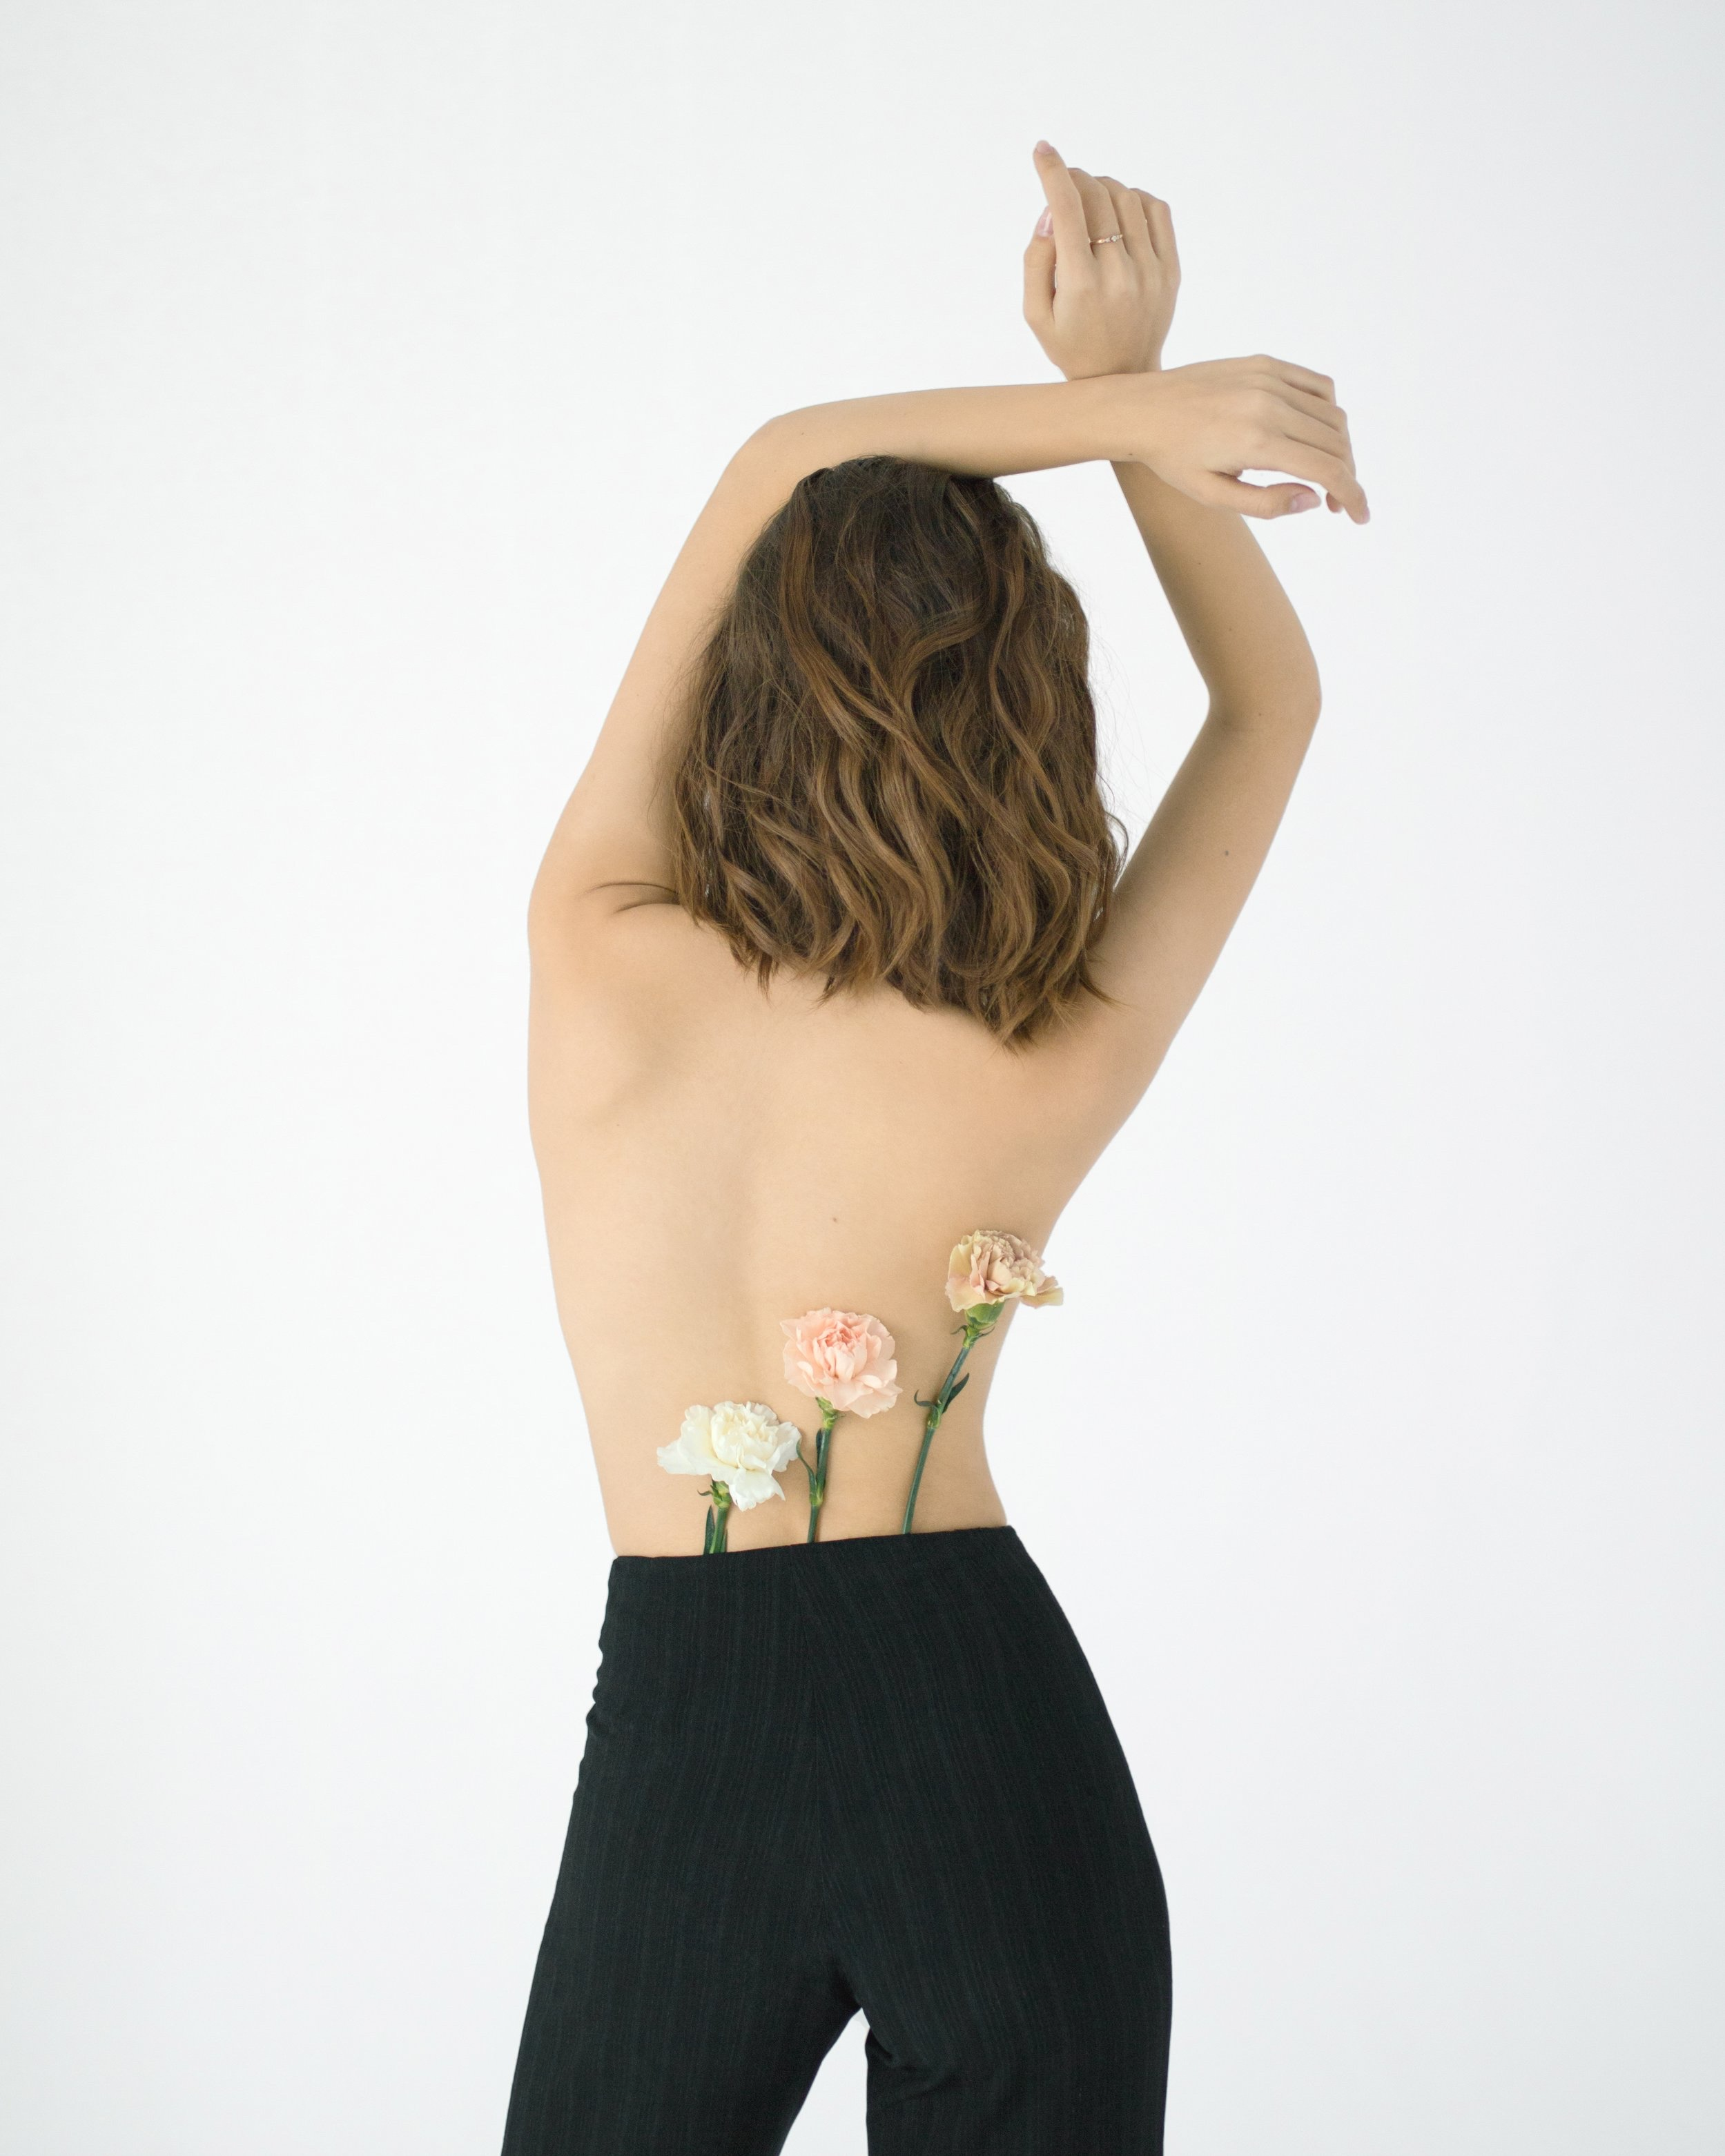 Original Human Skin Care - Image of a woman from behind with flowers tucked into the back pocket of her jeans.